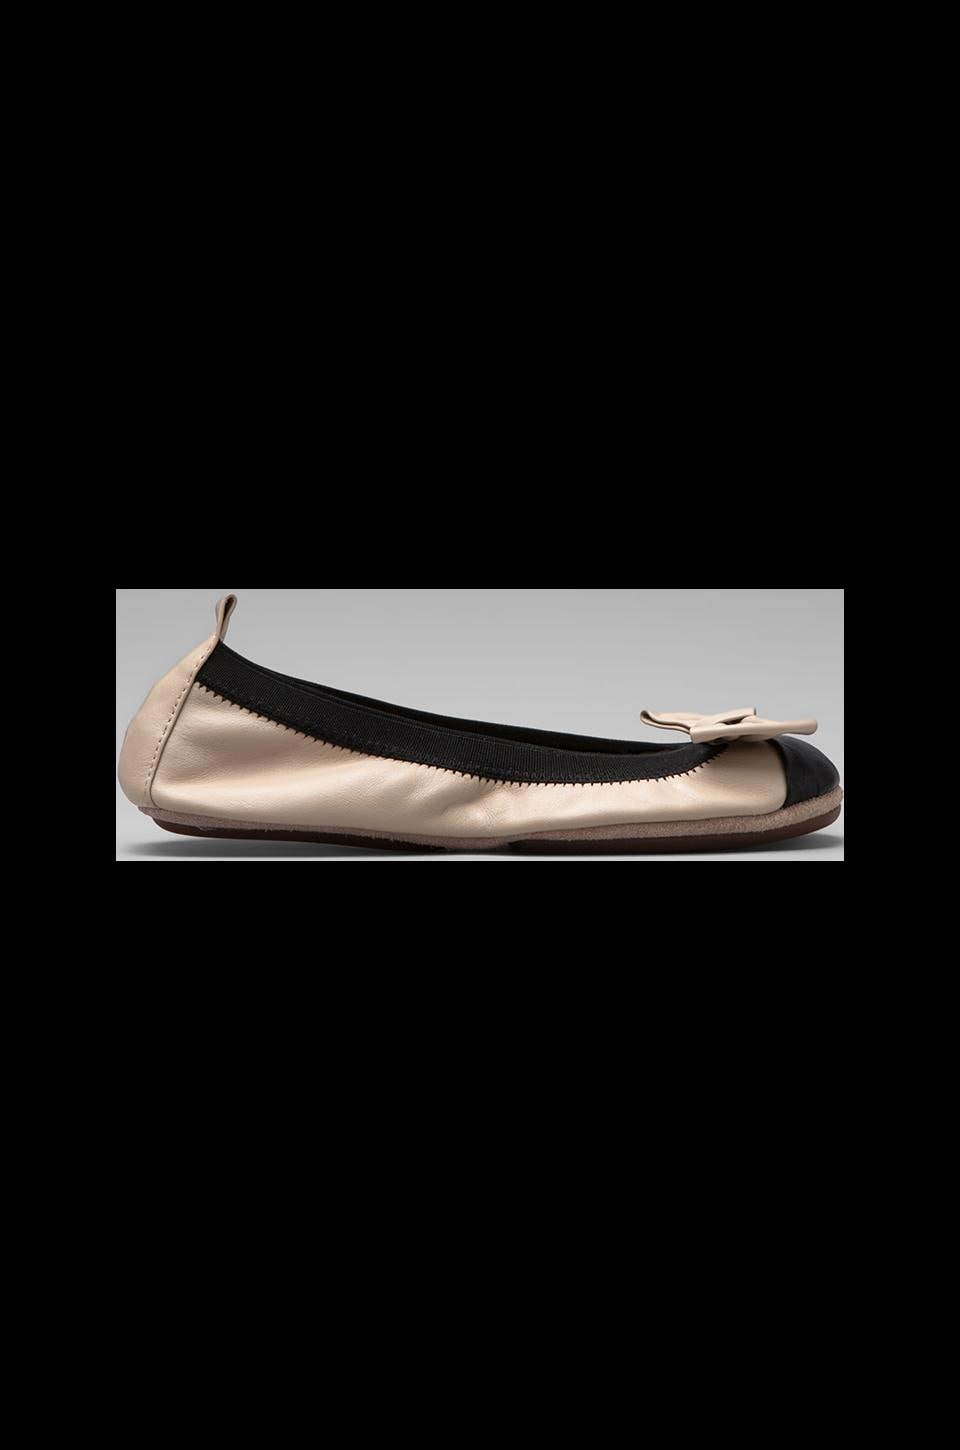 Yosi Samra Two Tone Cap Toe Ballet Flat in Fawn/Black